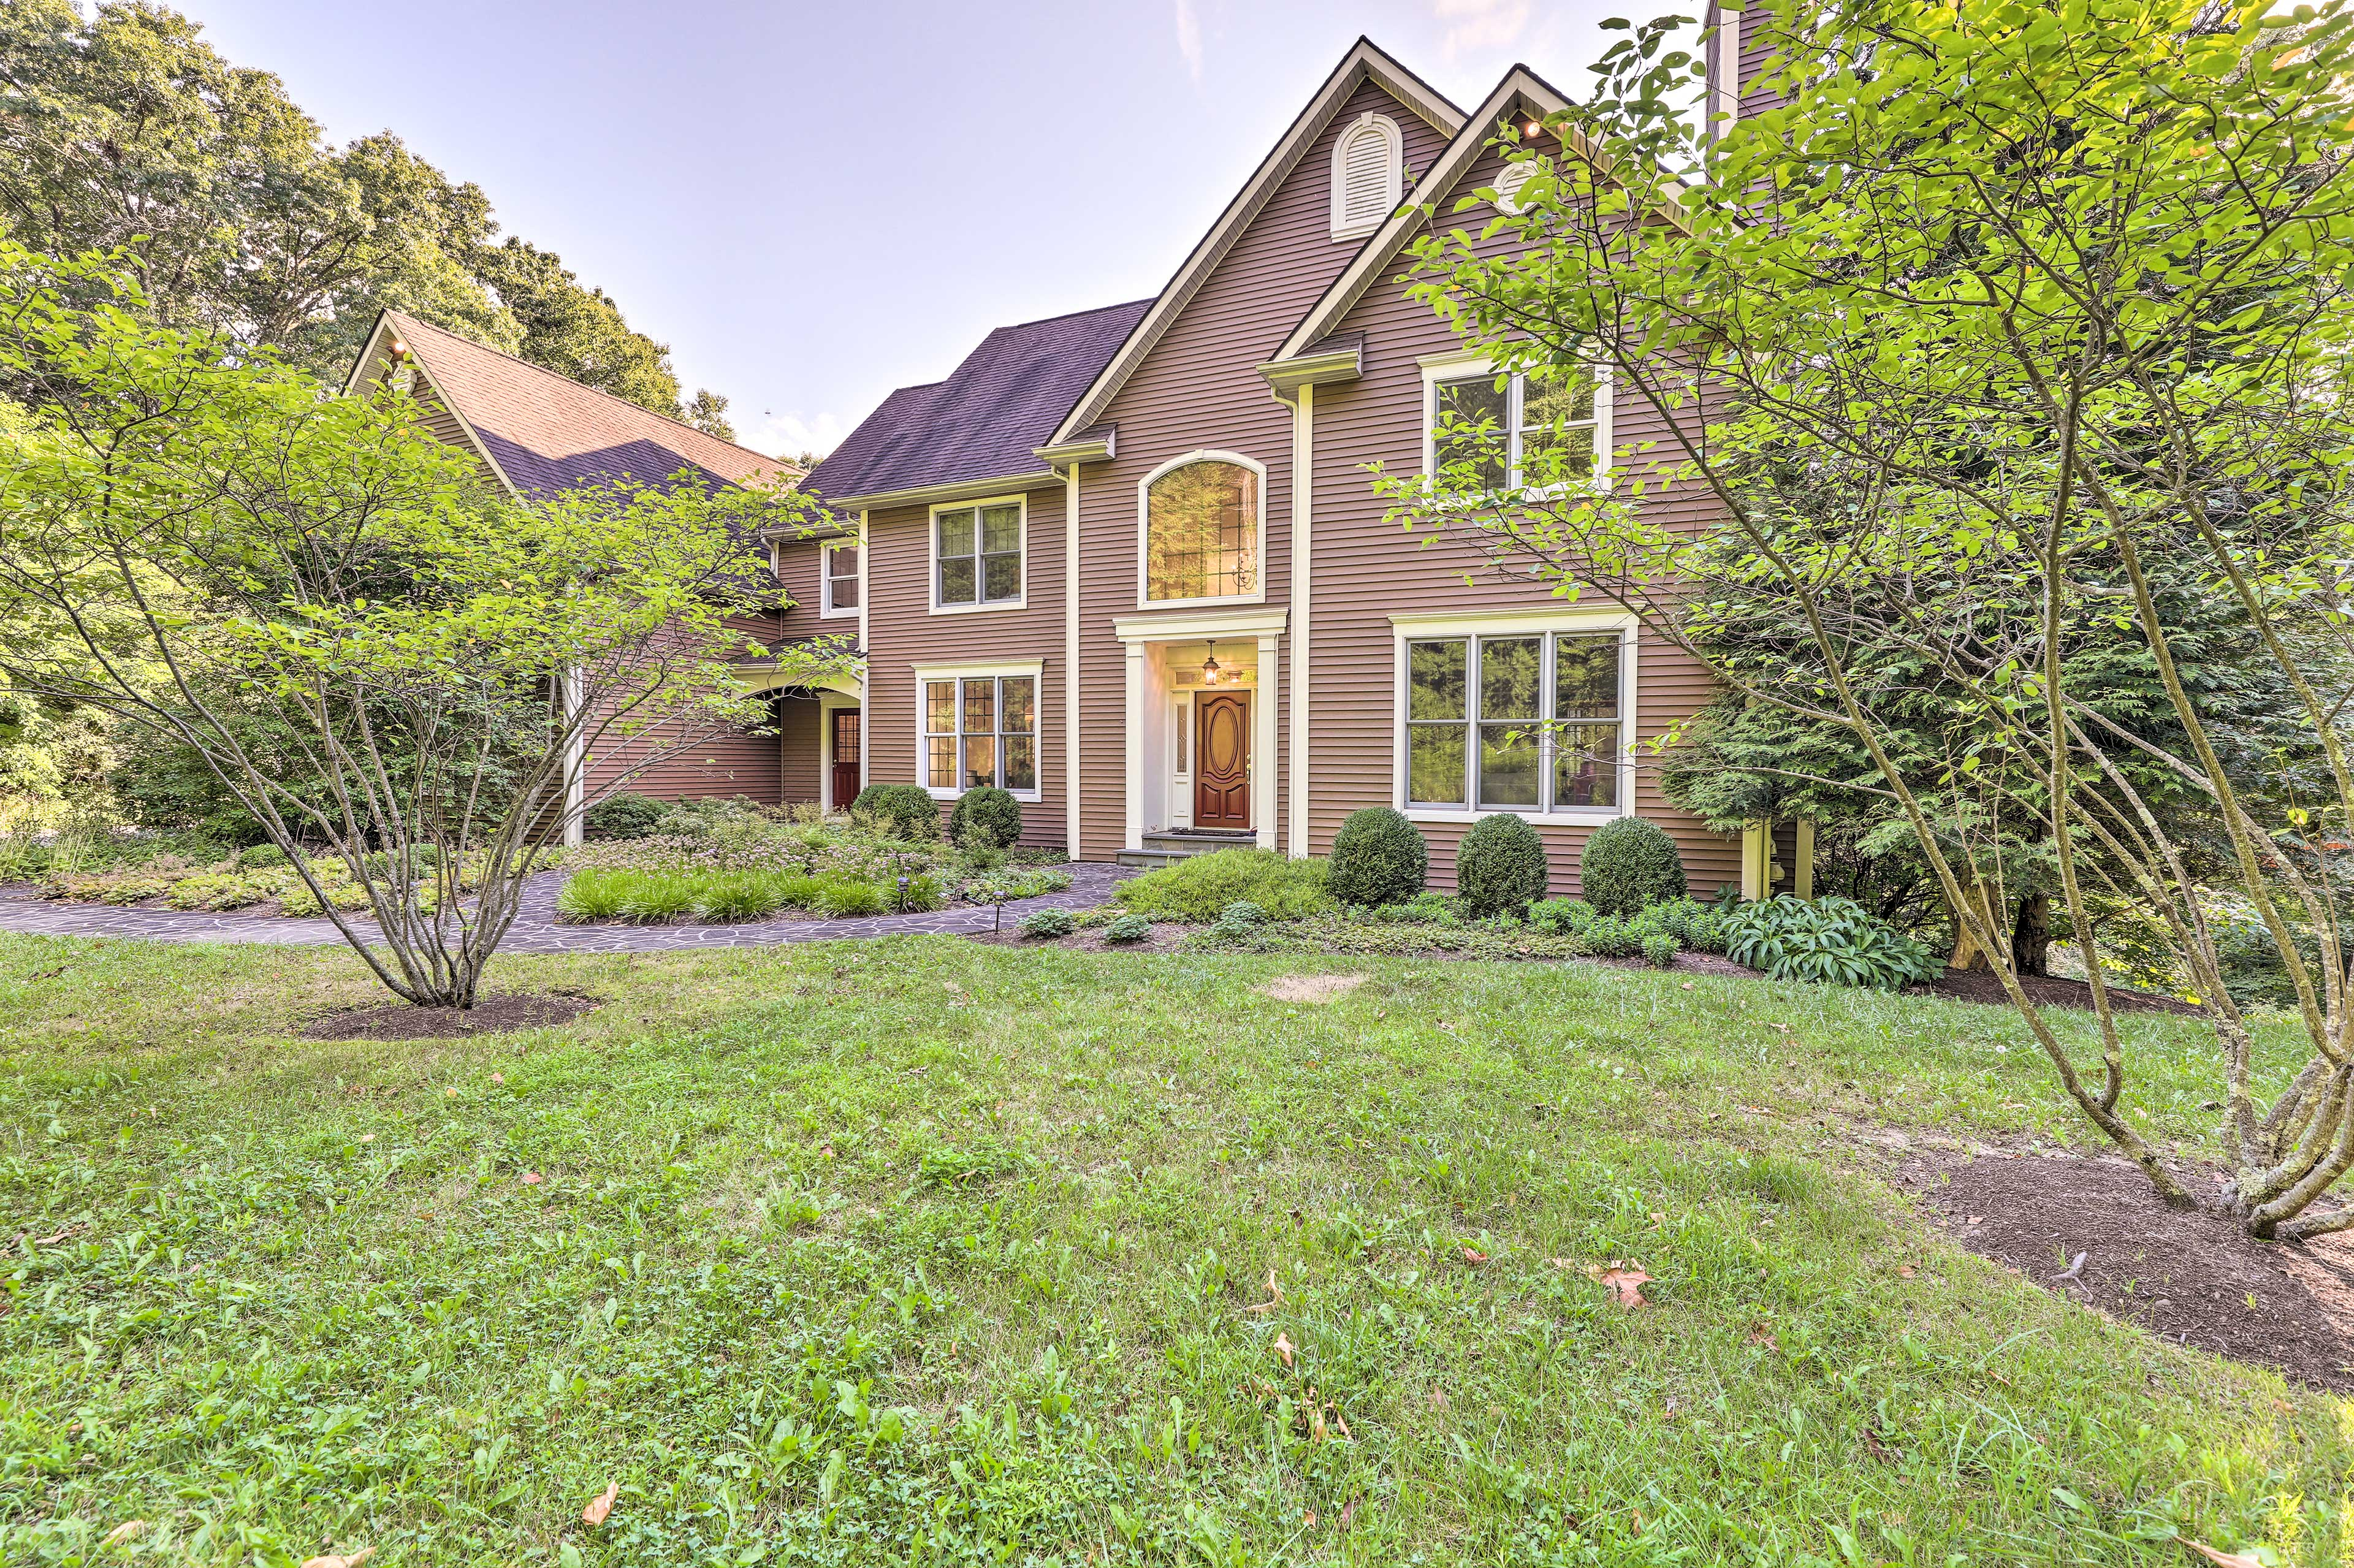 The property sits at the end of a secluded 0.2-mile long driveway.